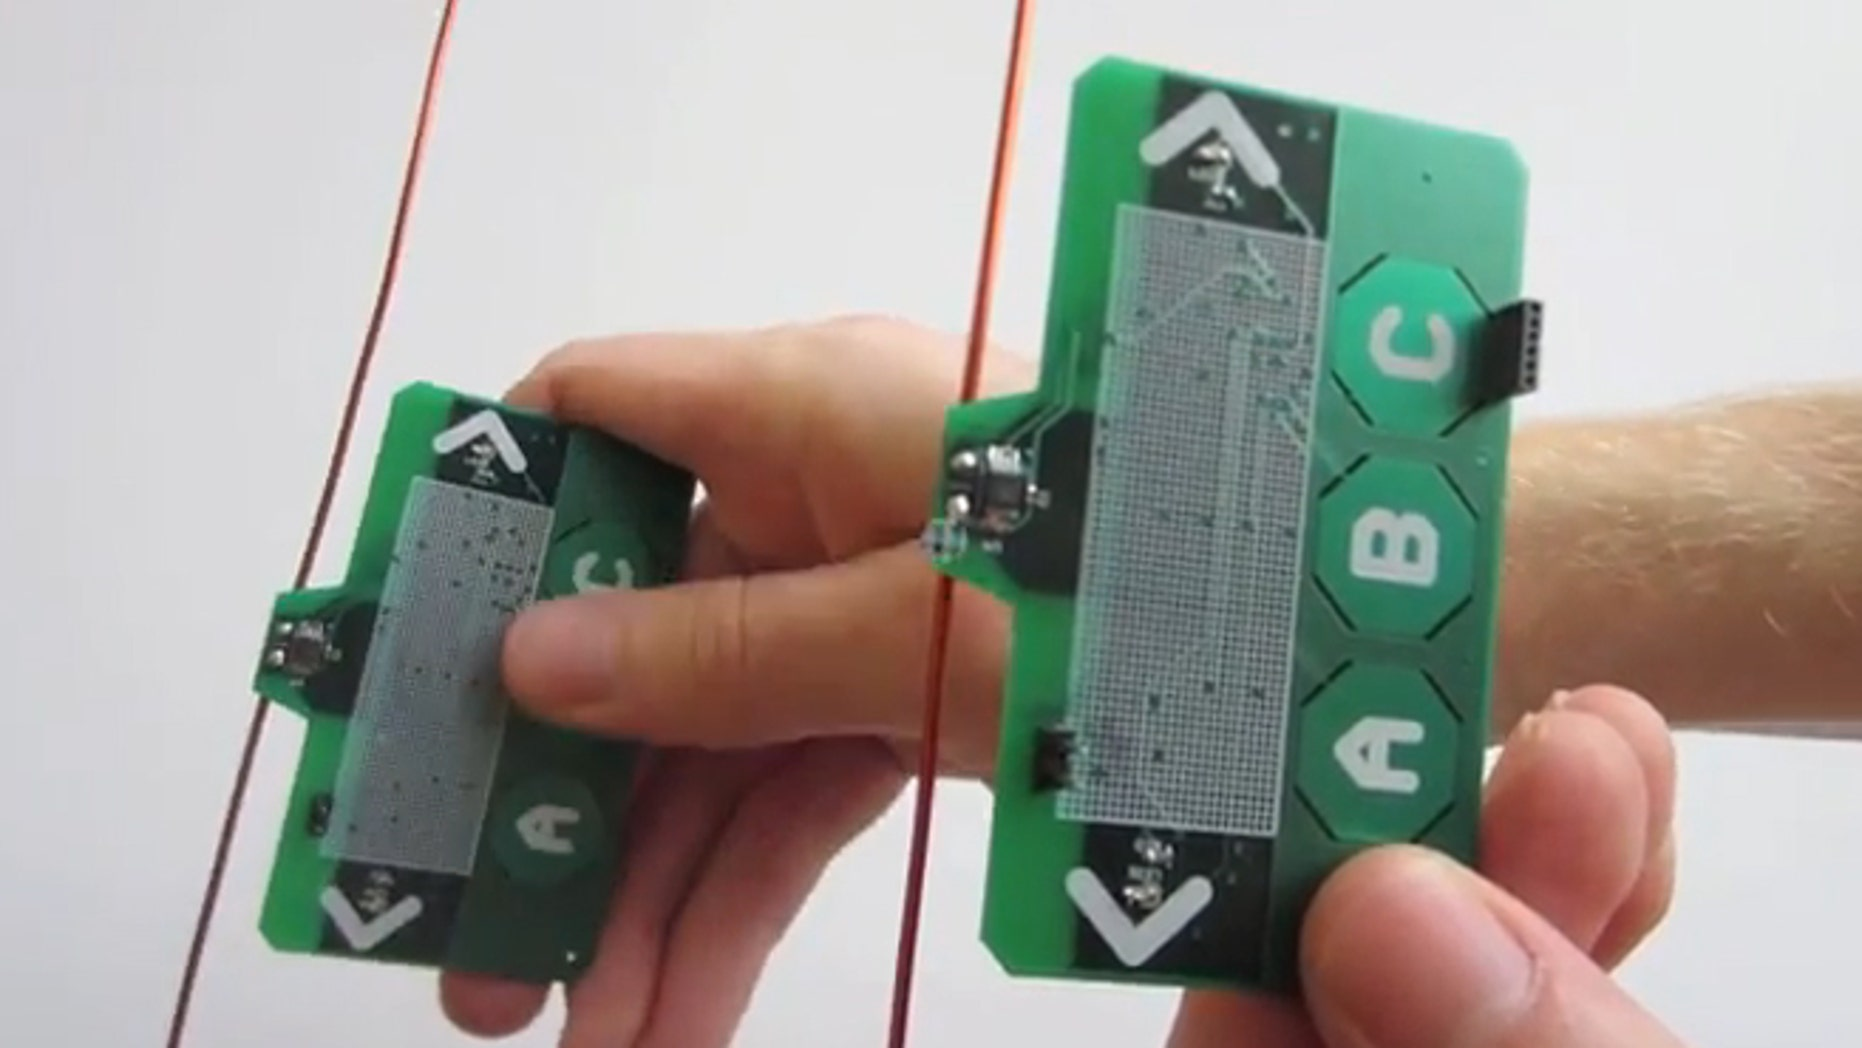 This device turns wireless signals into both a source of power and a communication medium.